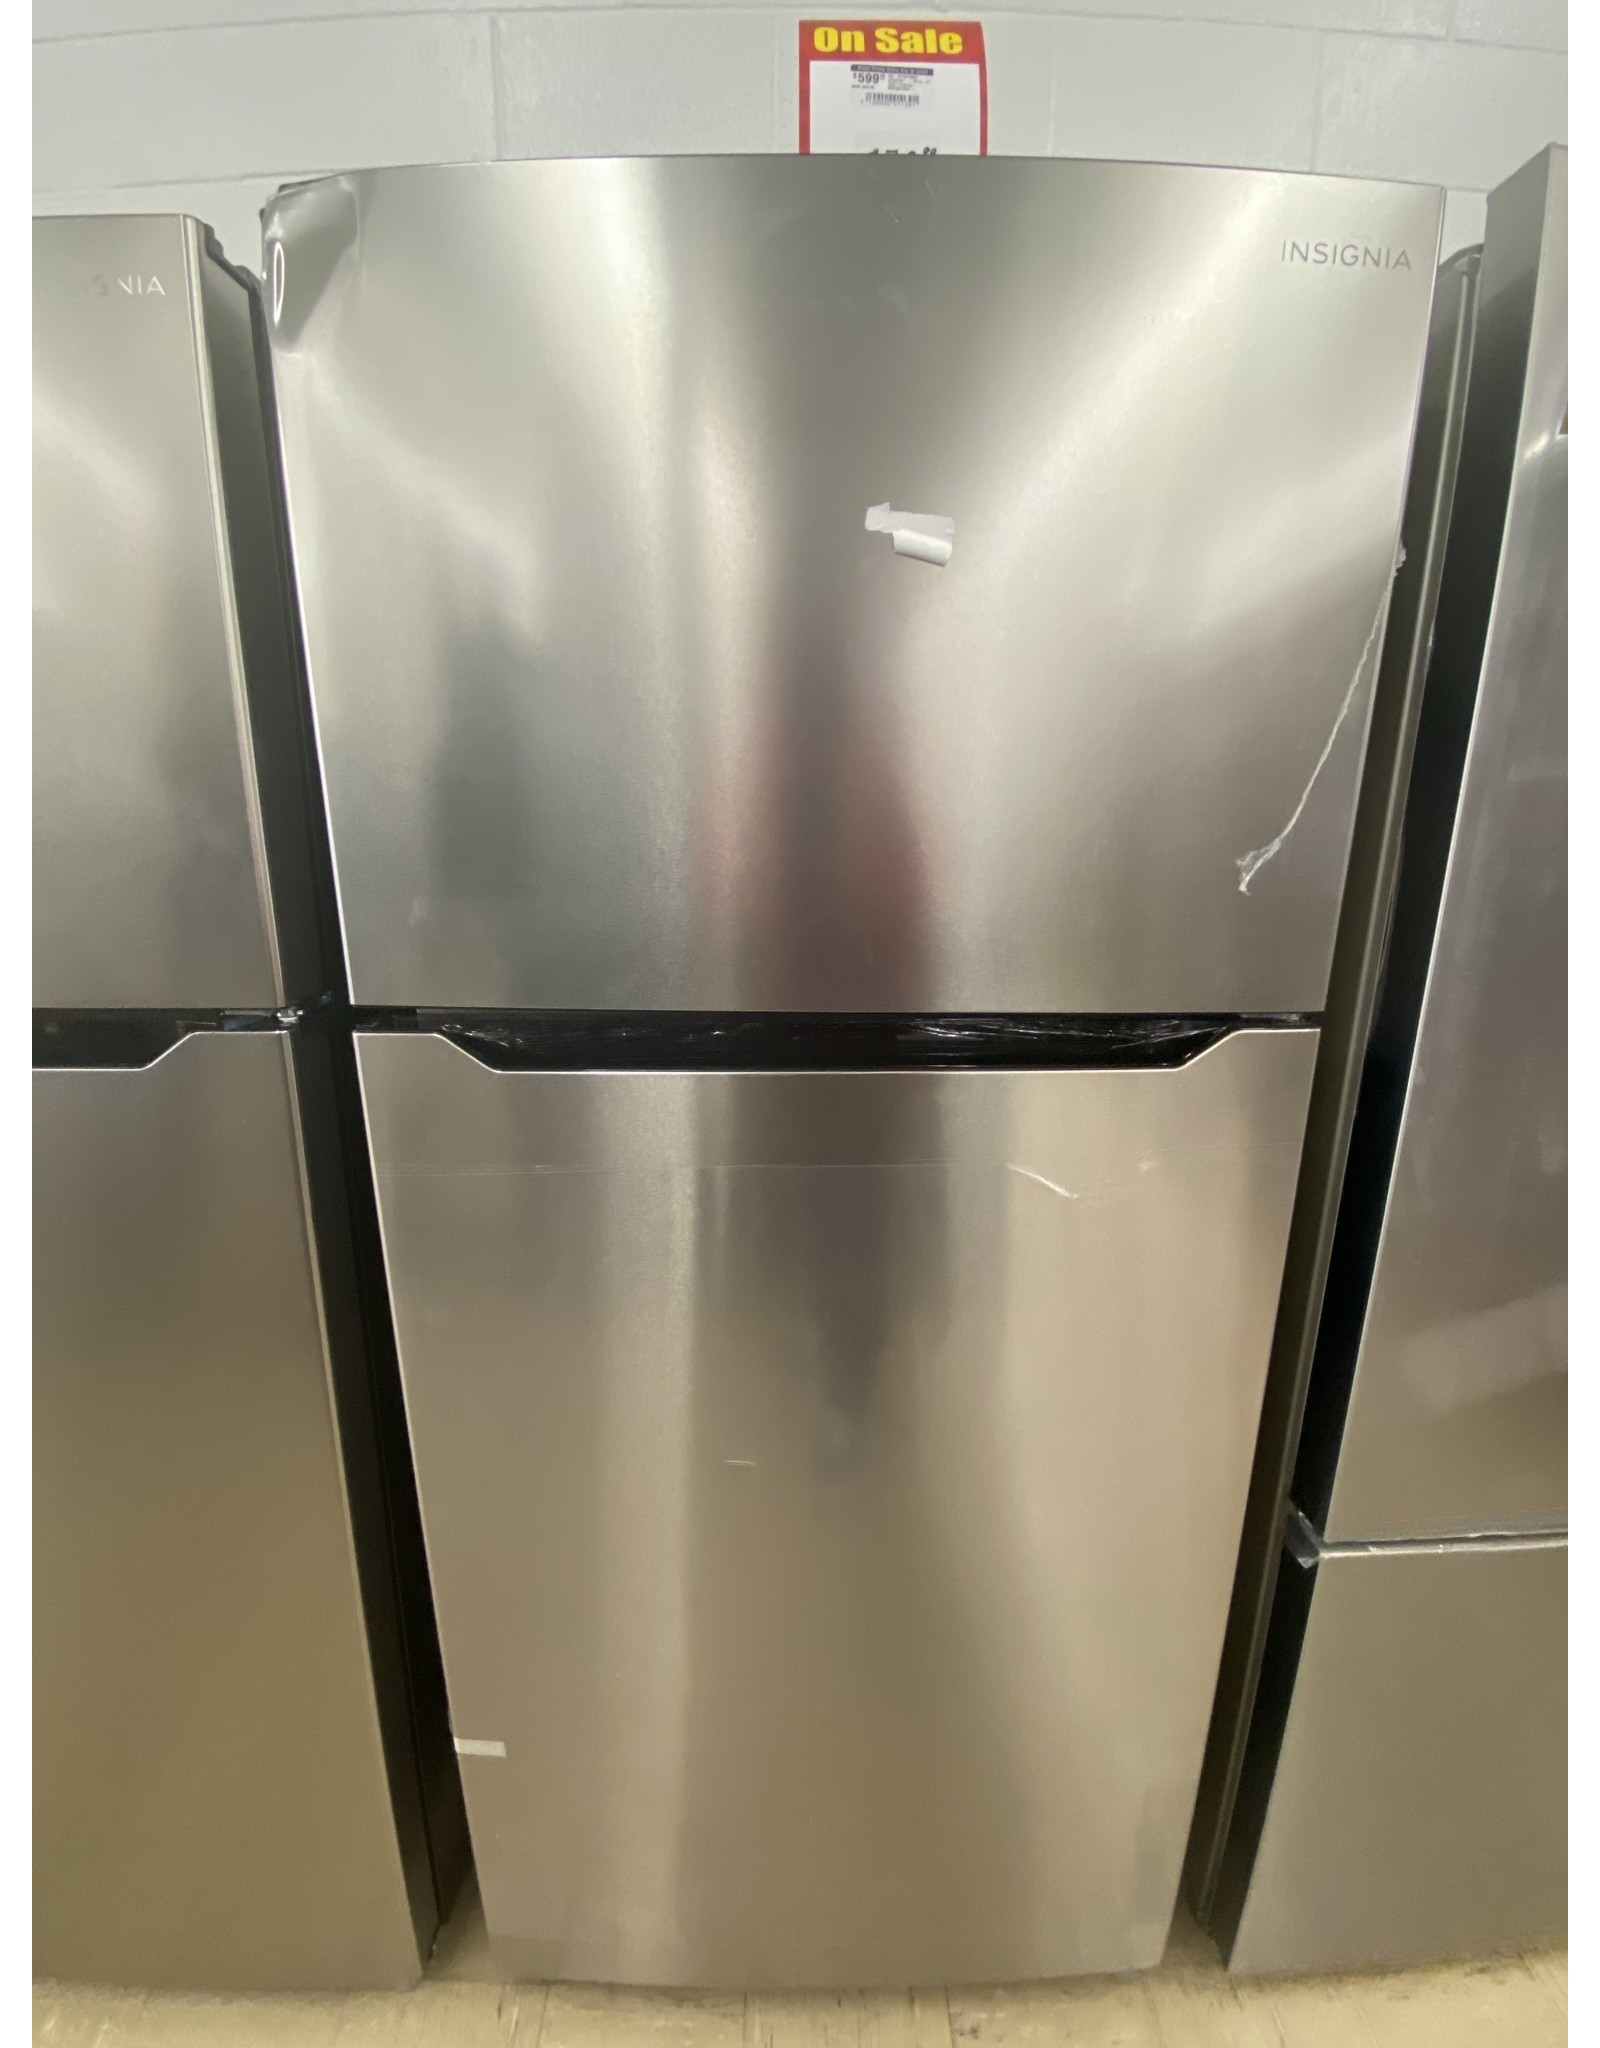 Insignia™ NS-RTM18SS7 Insignia™ - 18 Cu. Ft. Top-Freezer Refrigerator - Stainless steel